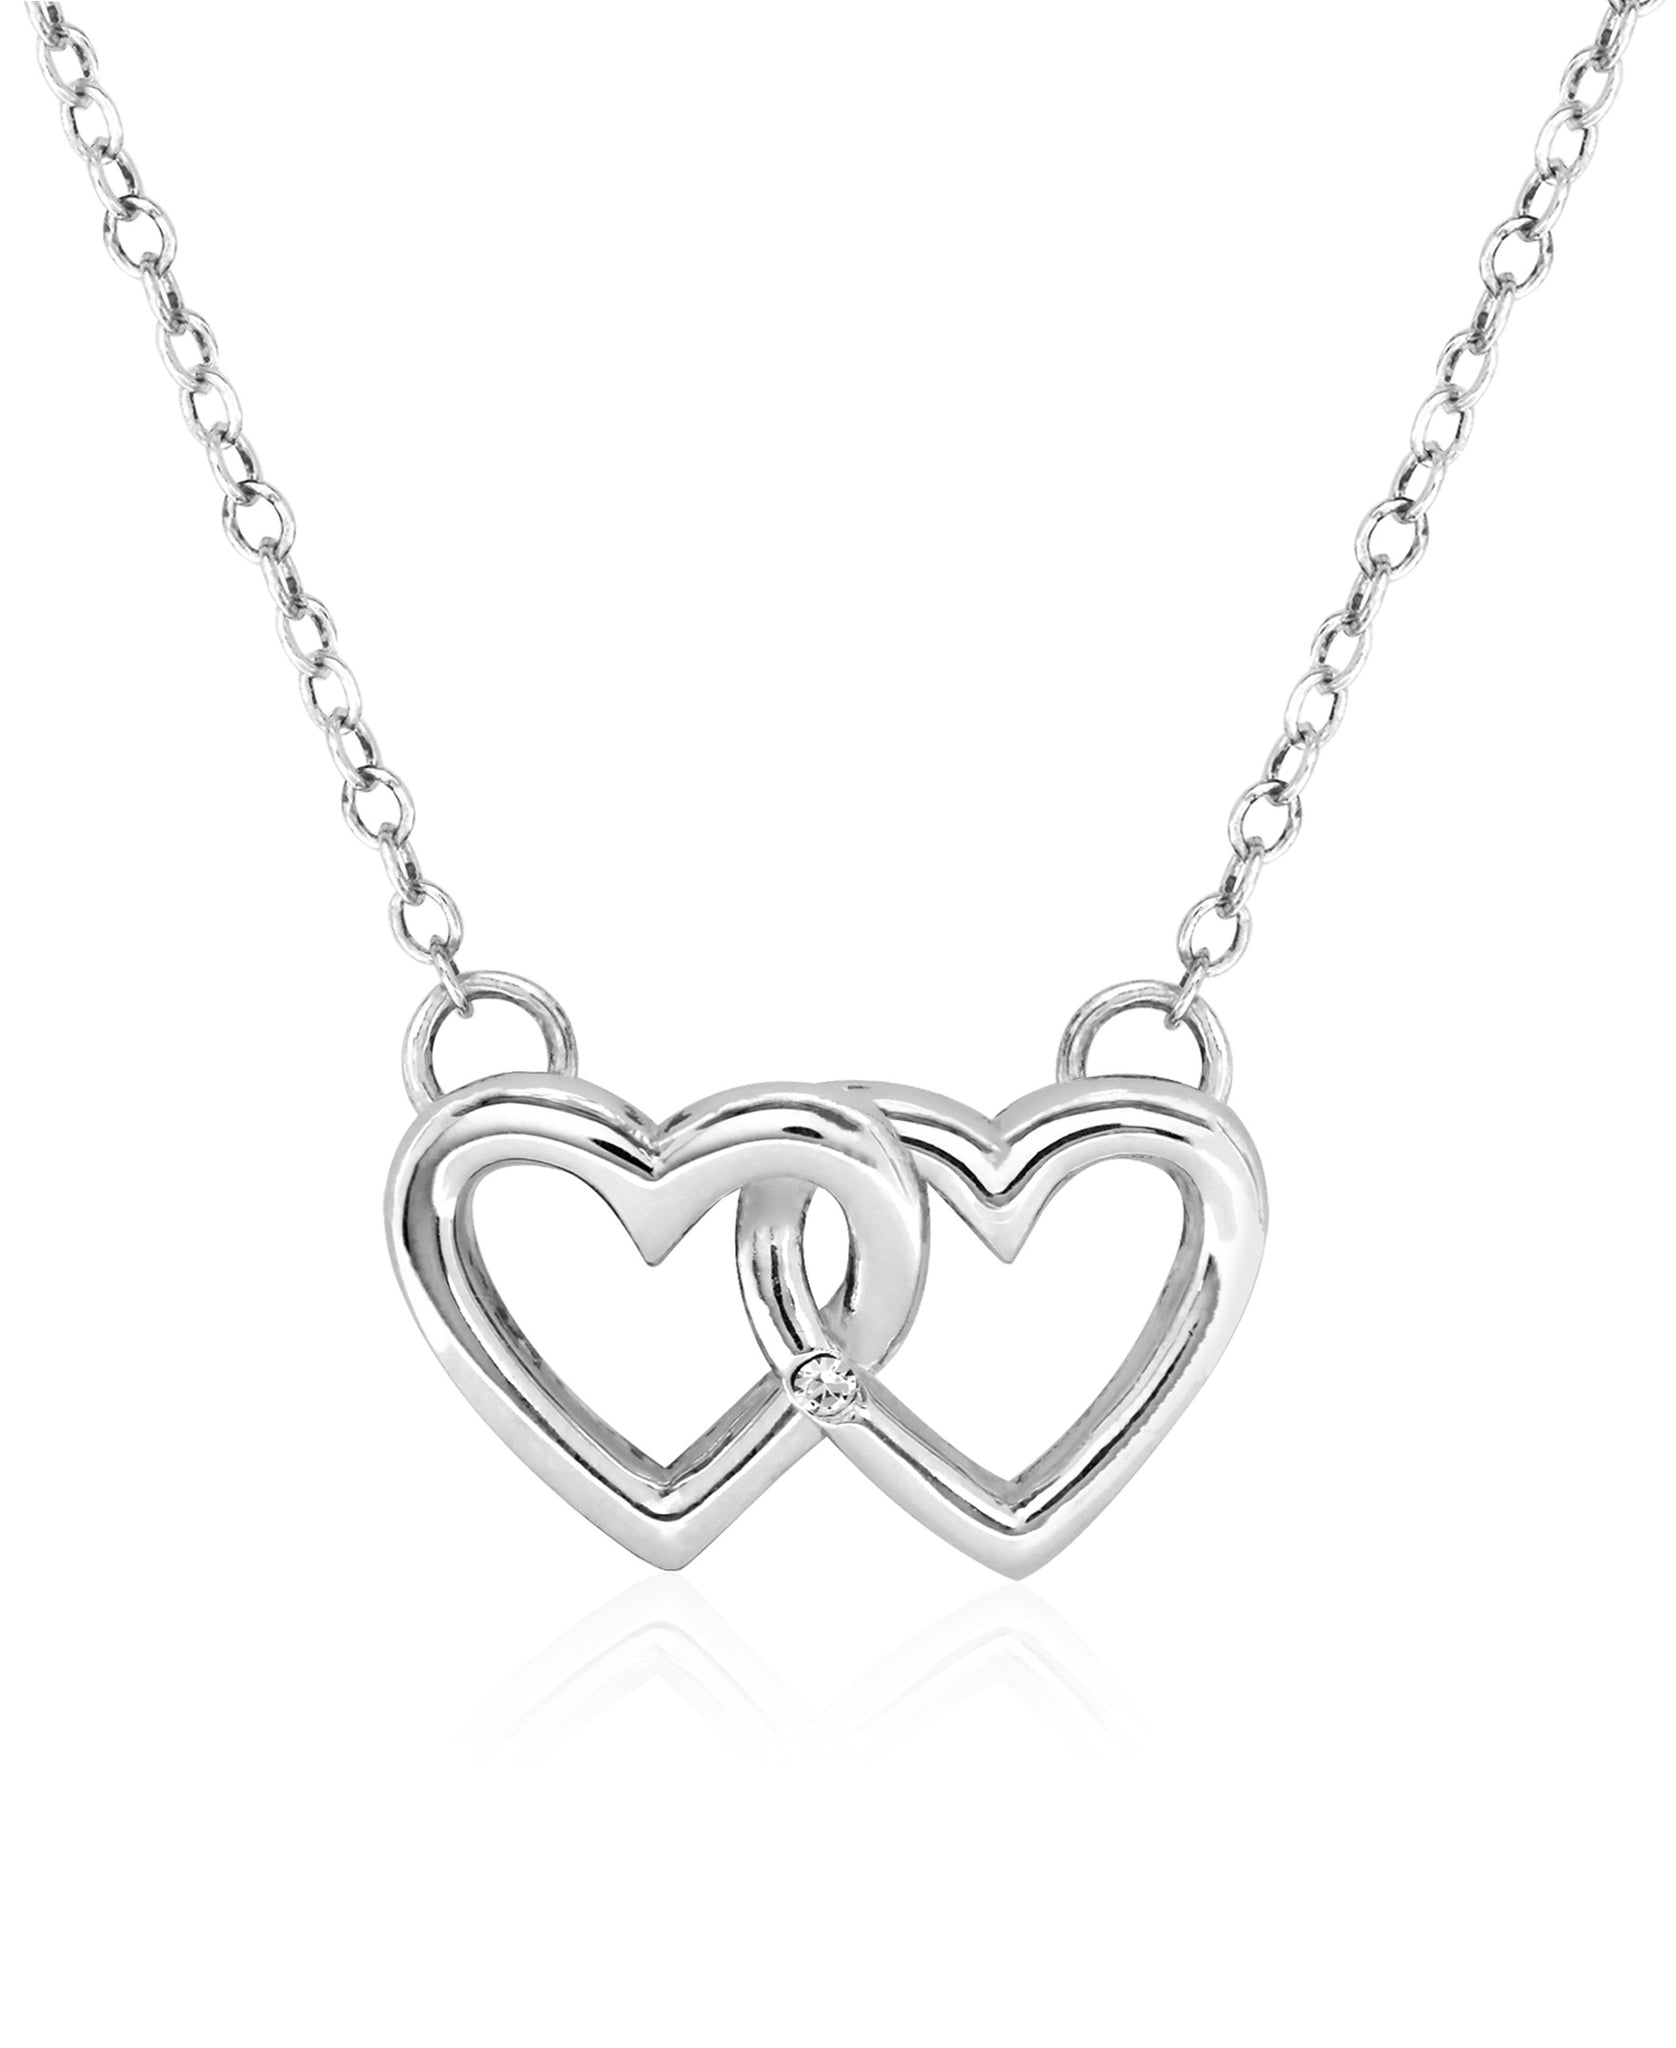 Children's Sterling Silver Double Heart Pendant Necklace - Rhona Sutton Jewellery